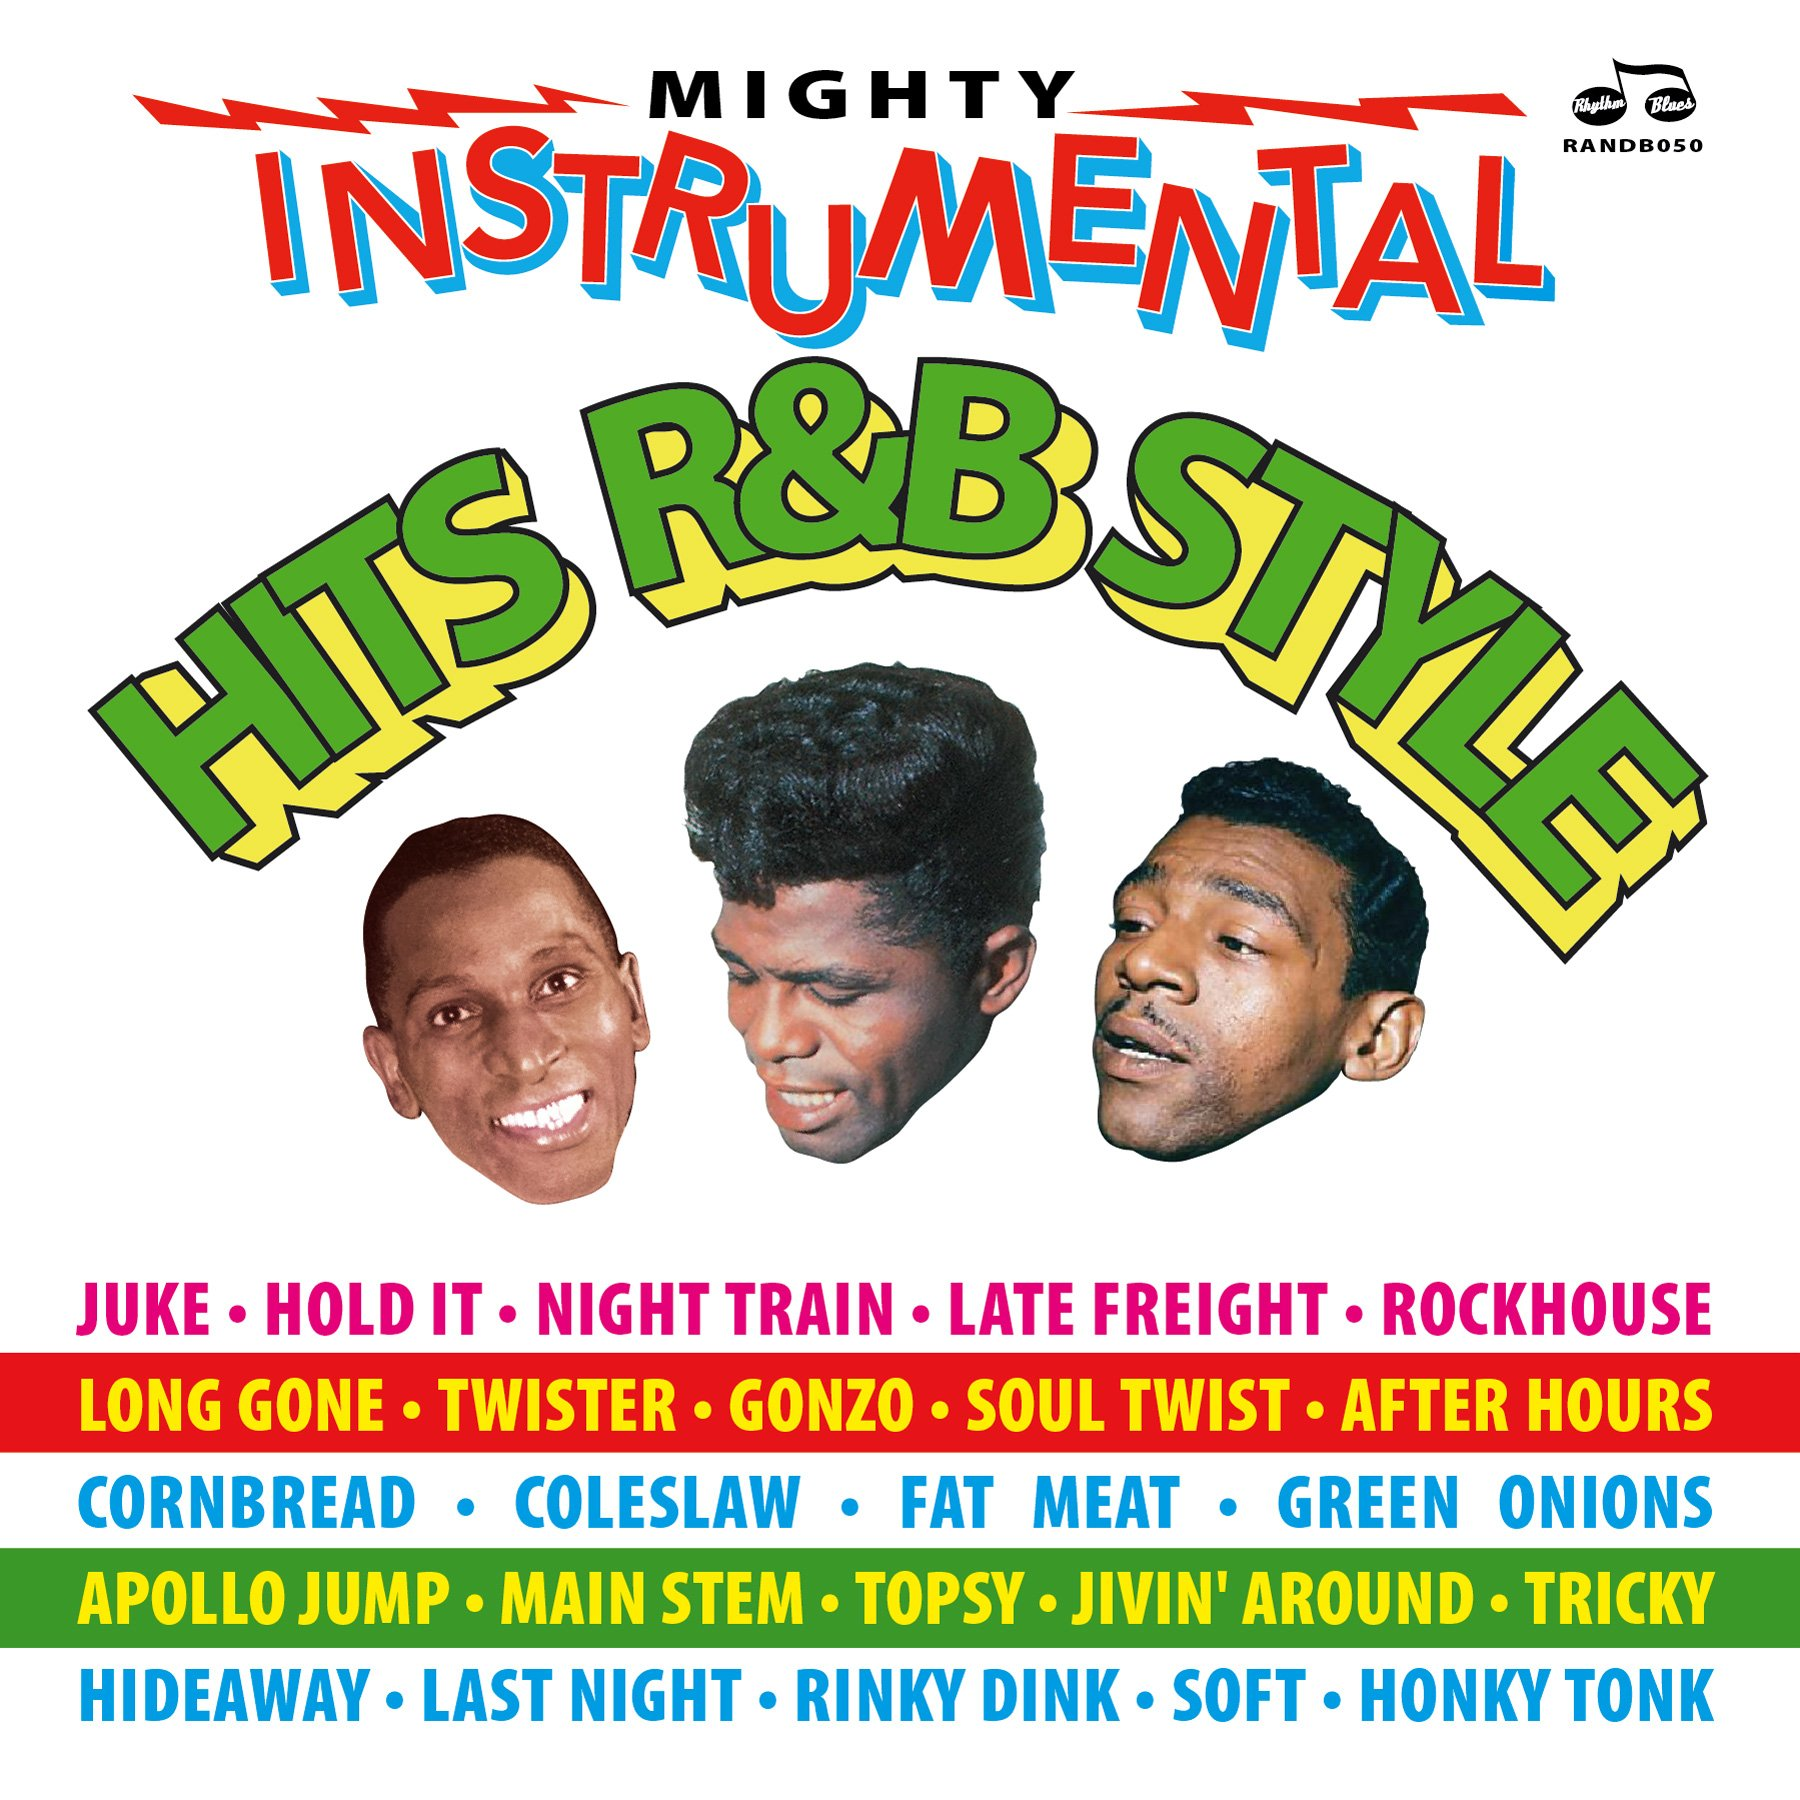 Mighty Instrumental Hits R&B-Style